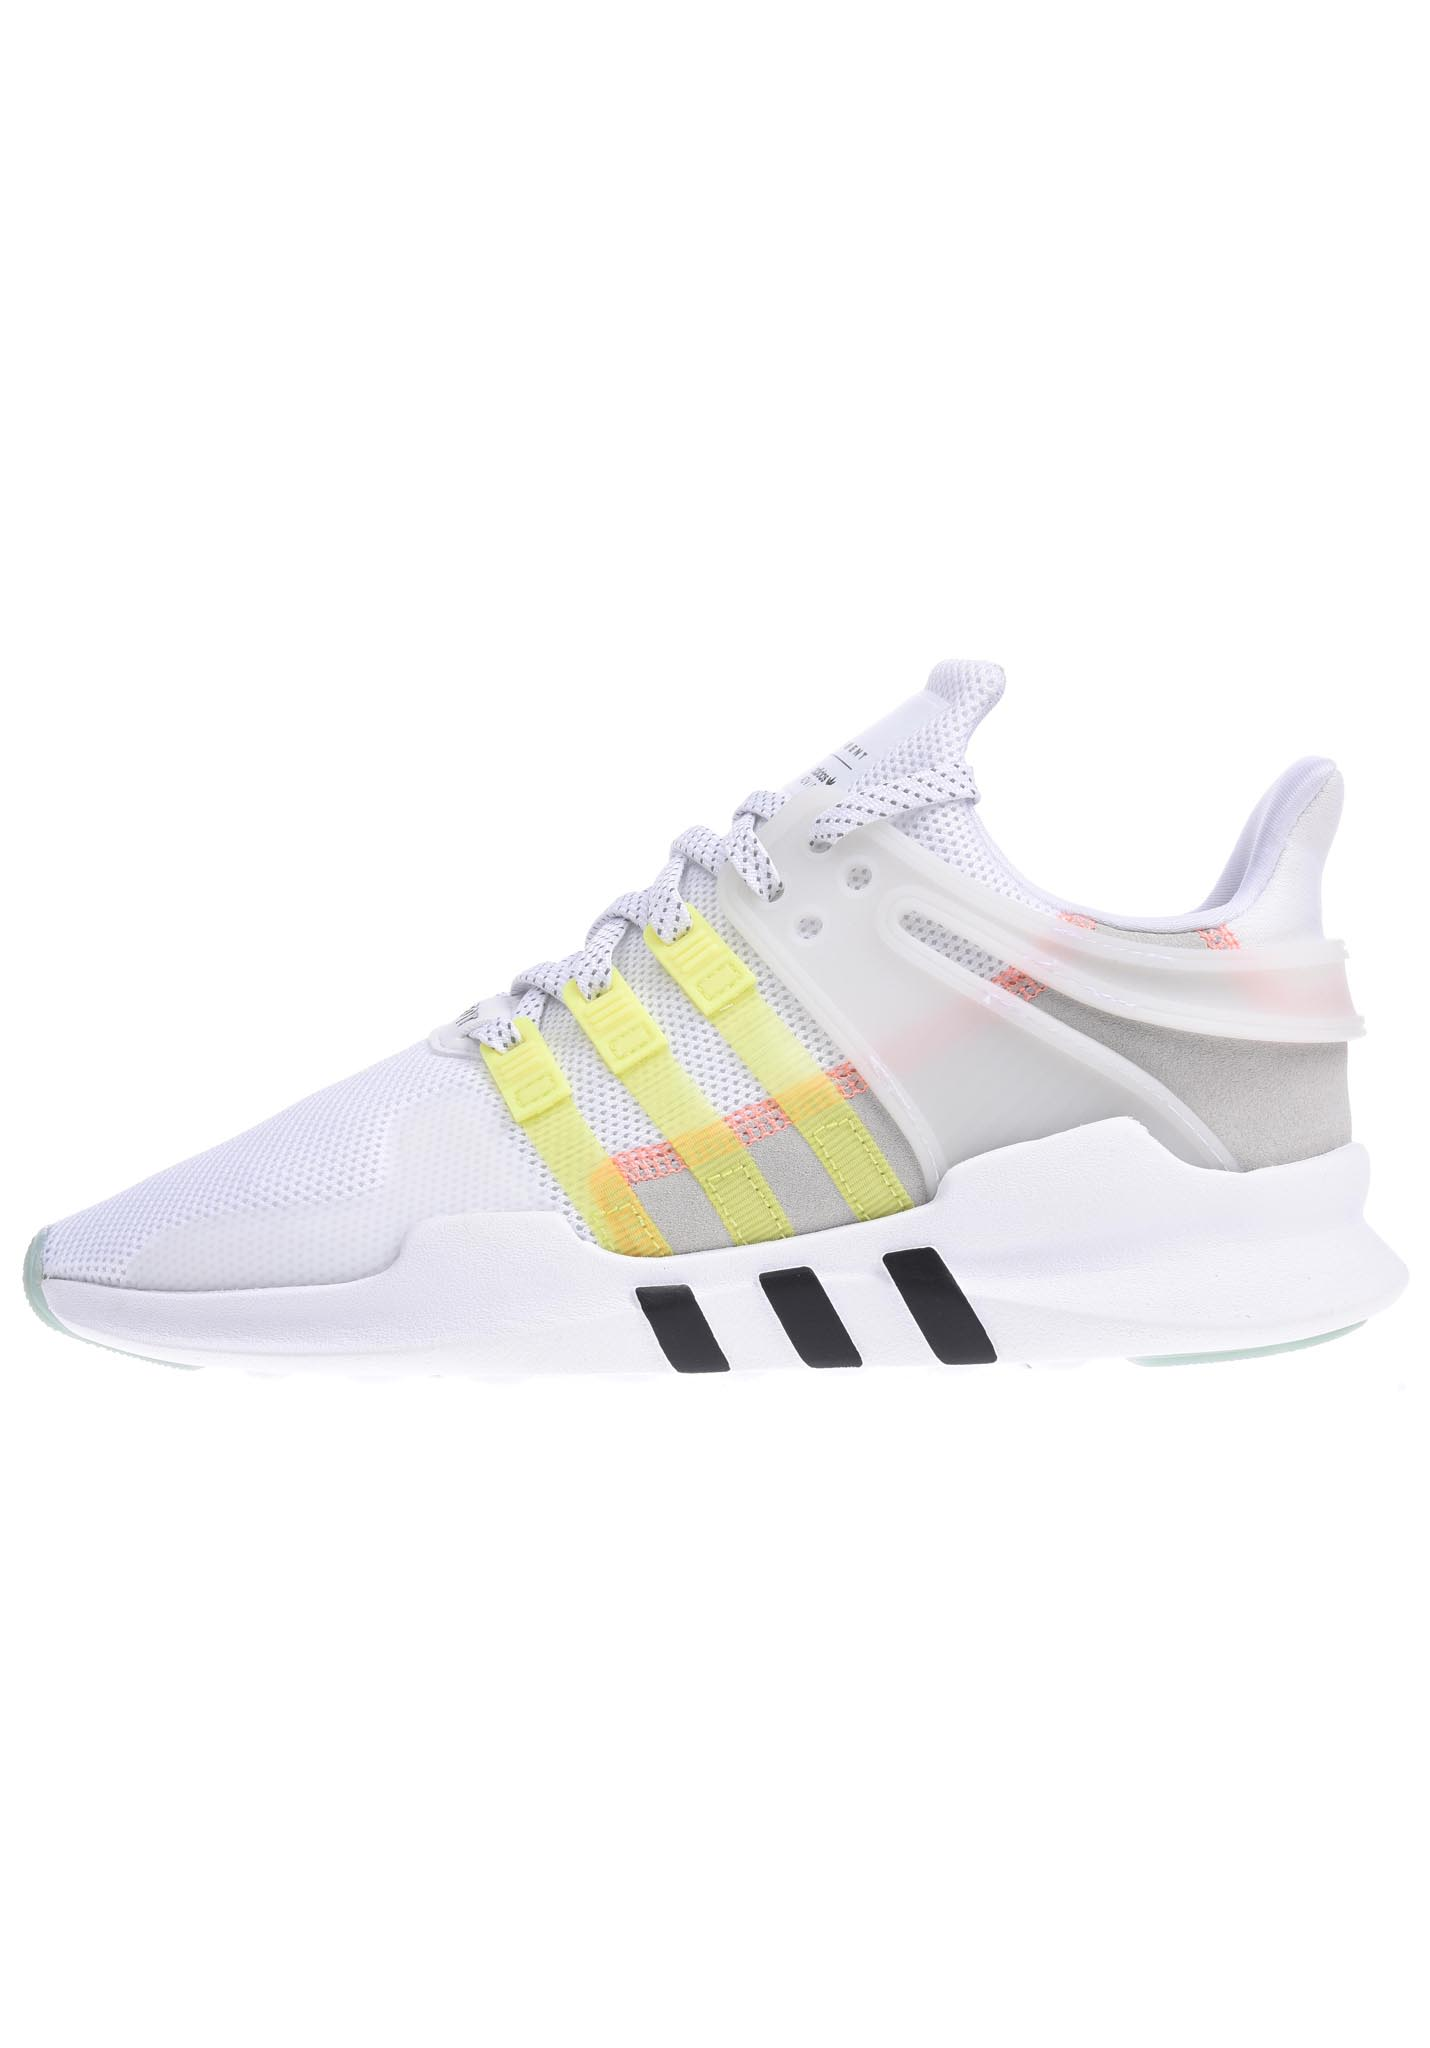 d5152d82e48e ADIDAS ORIGINALS Eqt Support Adv - Sneakers for Women - White - Planet  Sports